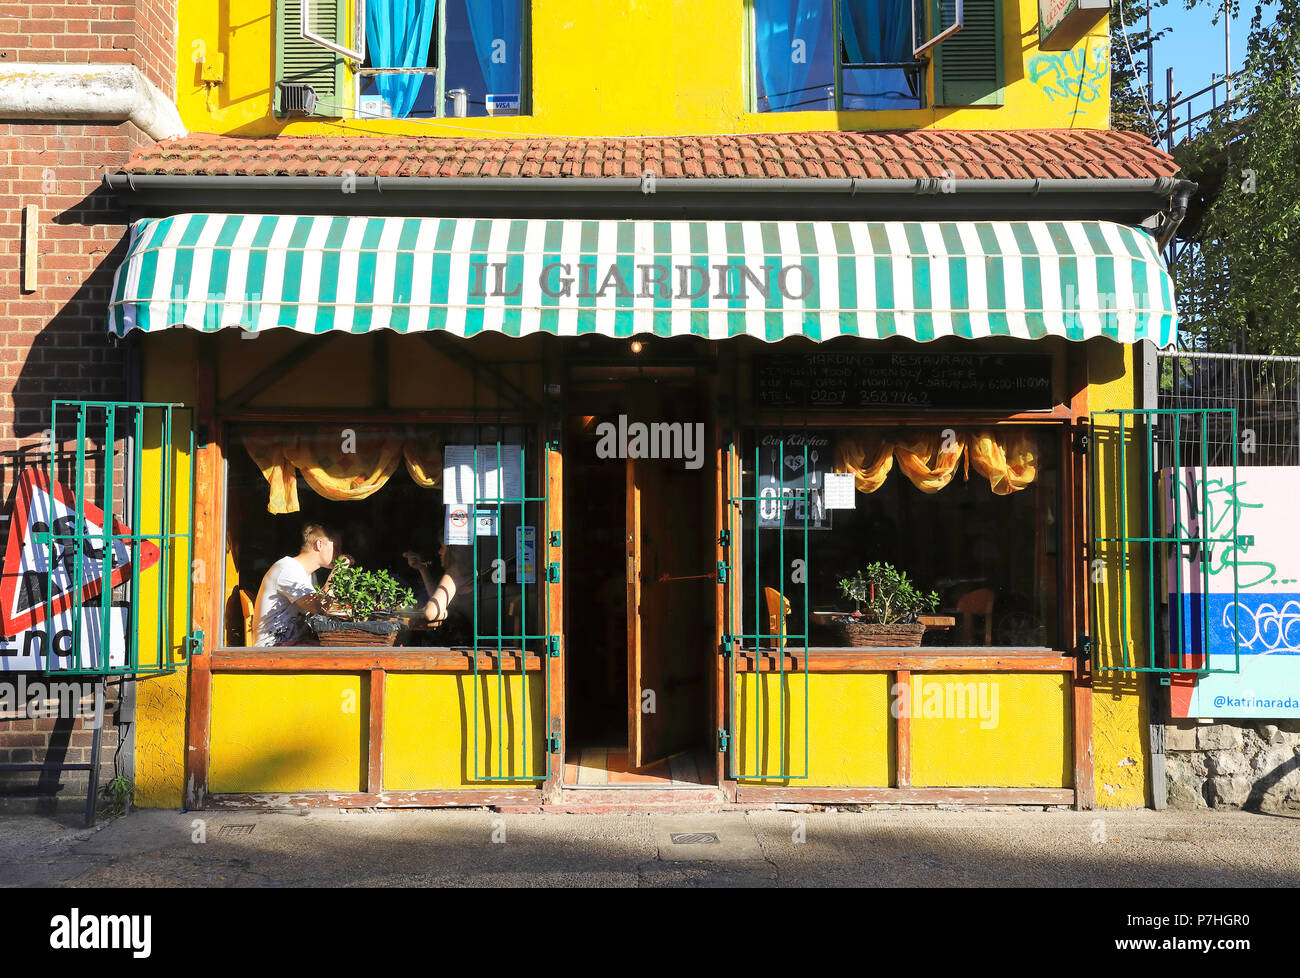 Italian Neighbourhood High Resolution Stock Photography And Images Alamy